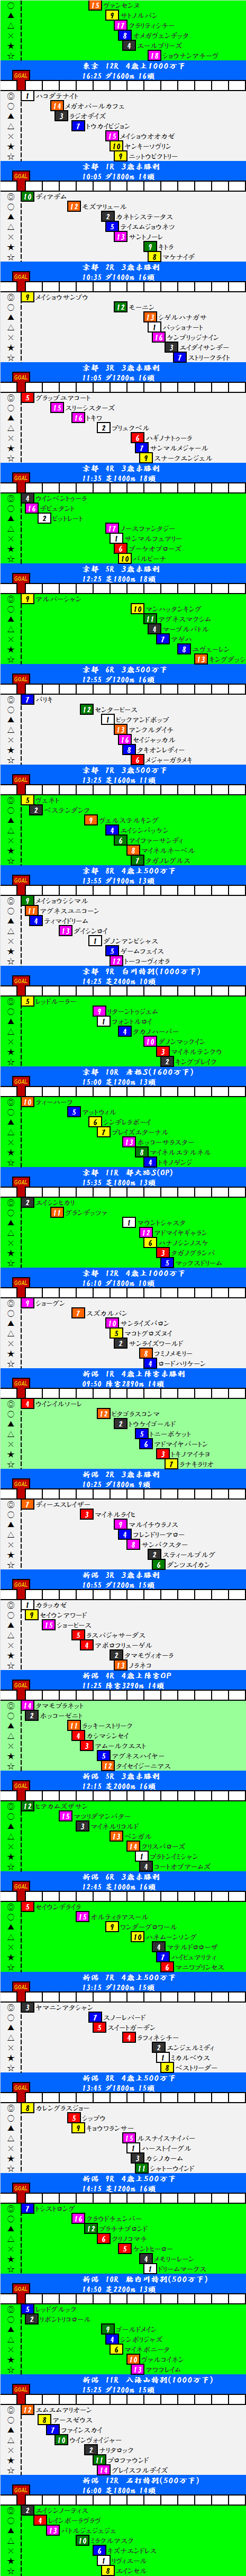 2015051602.png